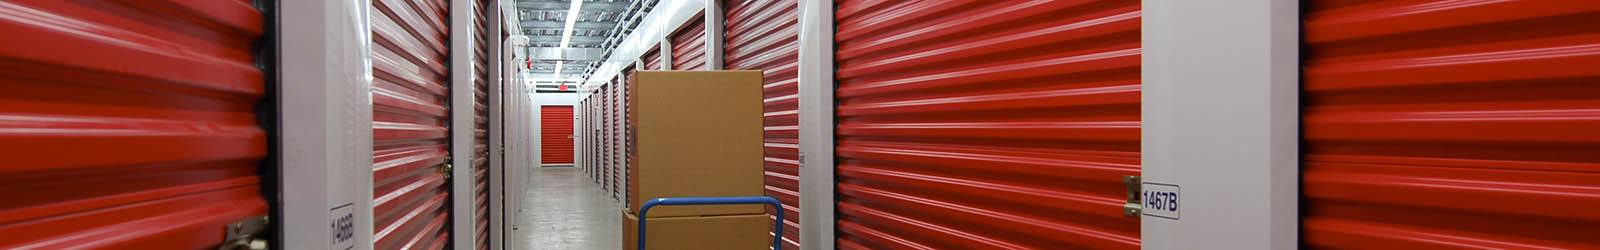 Storage units in Victoria, BC